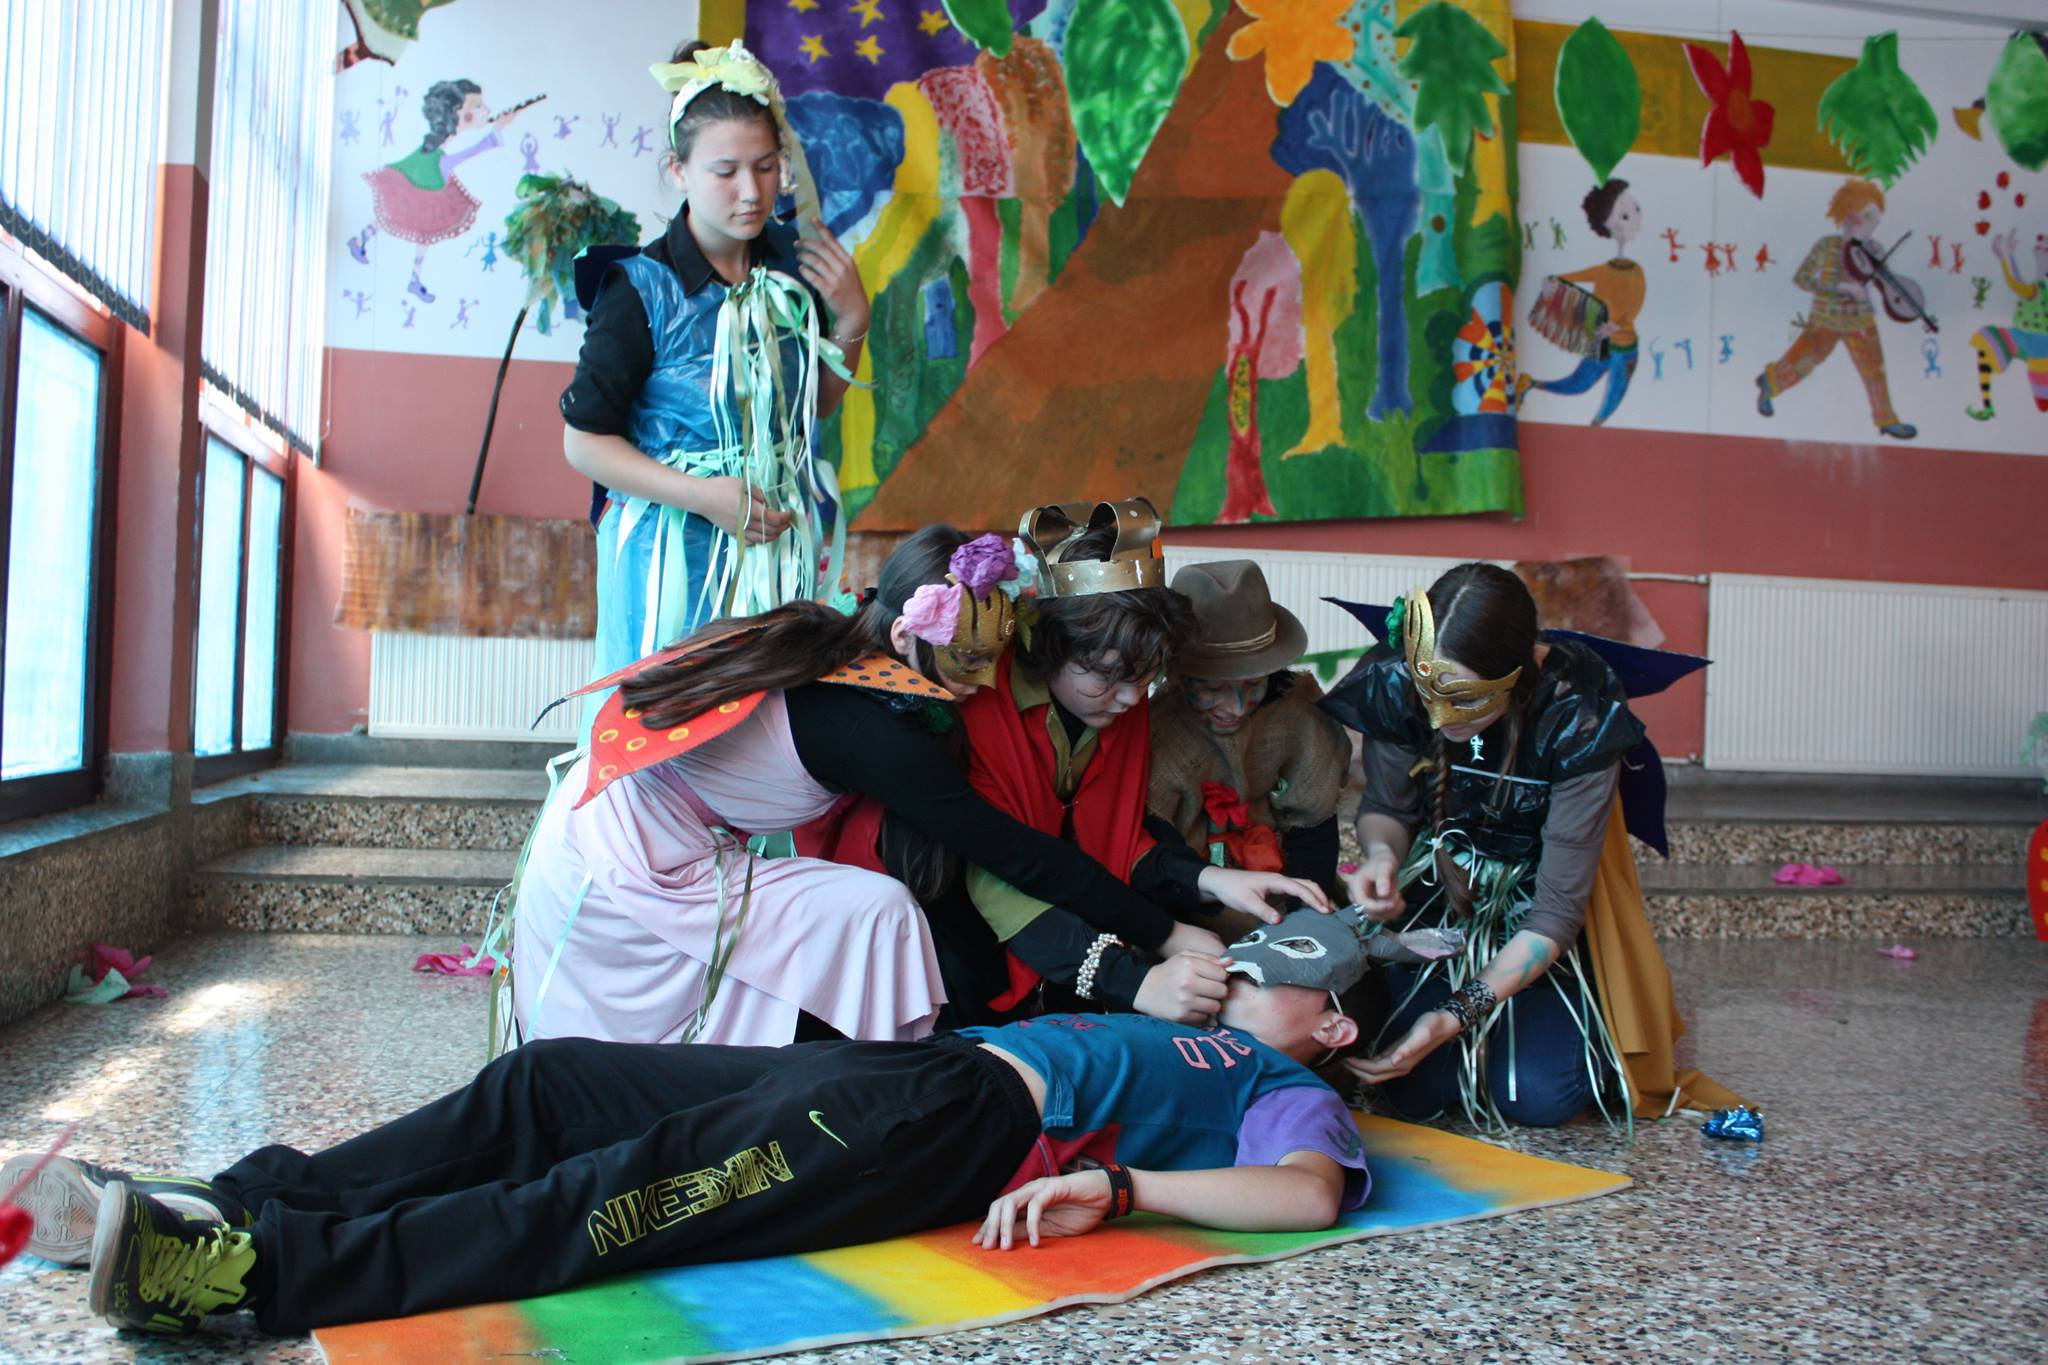 Notes from the Field: Creating a New Story Through Art in Post-Conflict Bosnia and Herzegovina